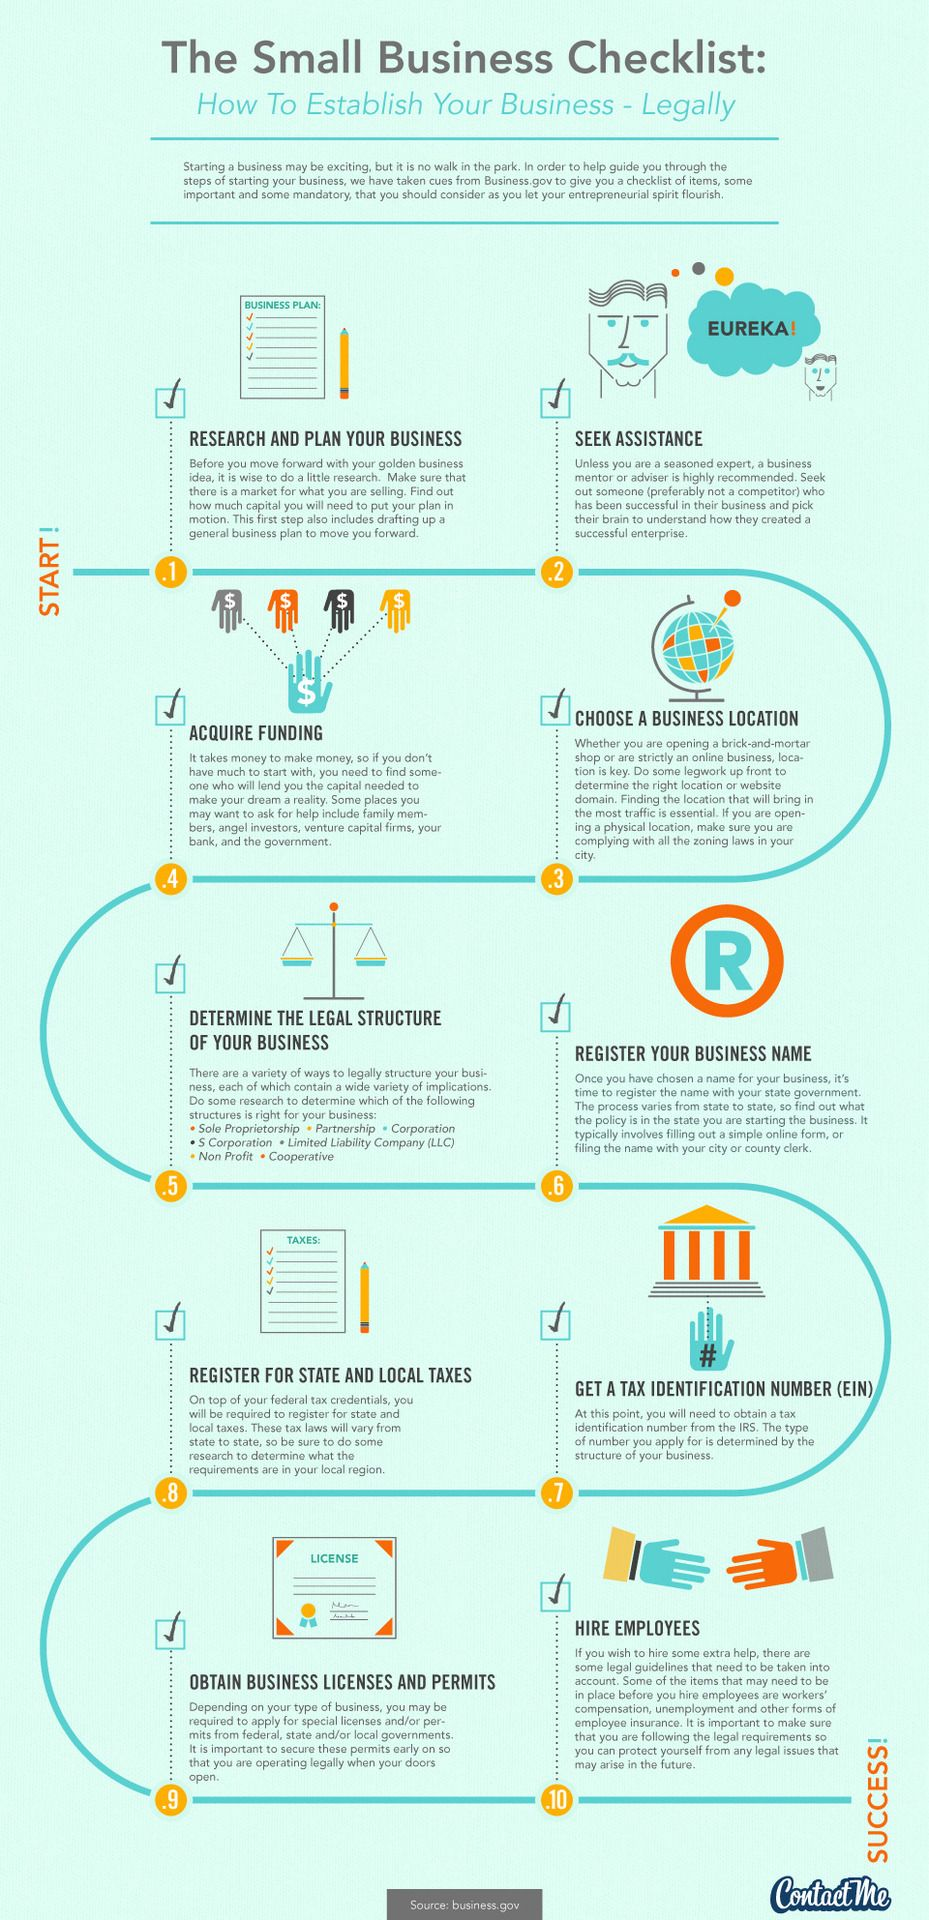 Im A Business Owner Now! The Small Business Checklist Infographic By:  ContactMe Gives Us Great Visual Information On How To Successfully Launch A  Business ...